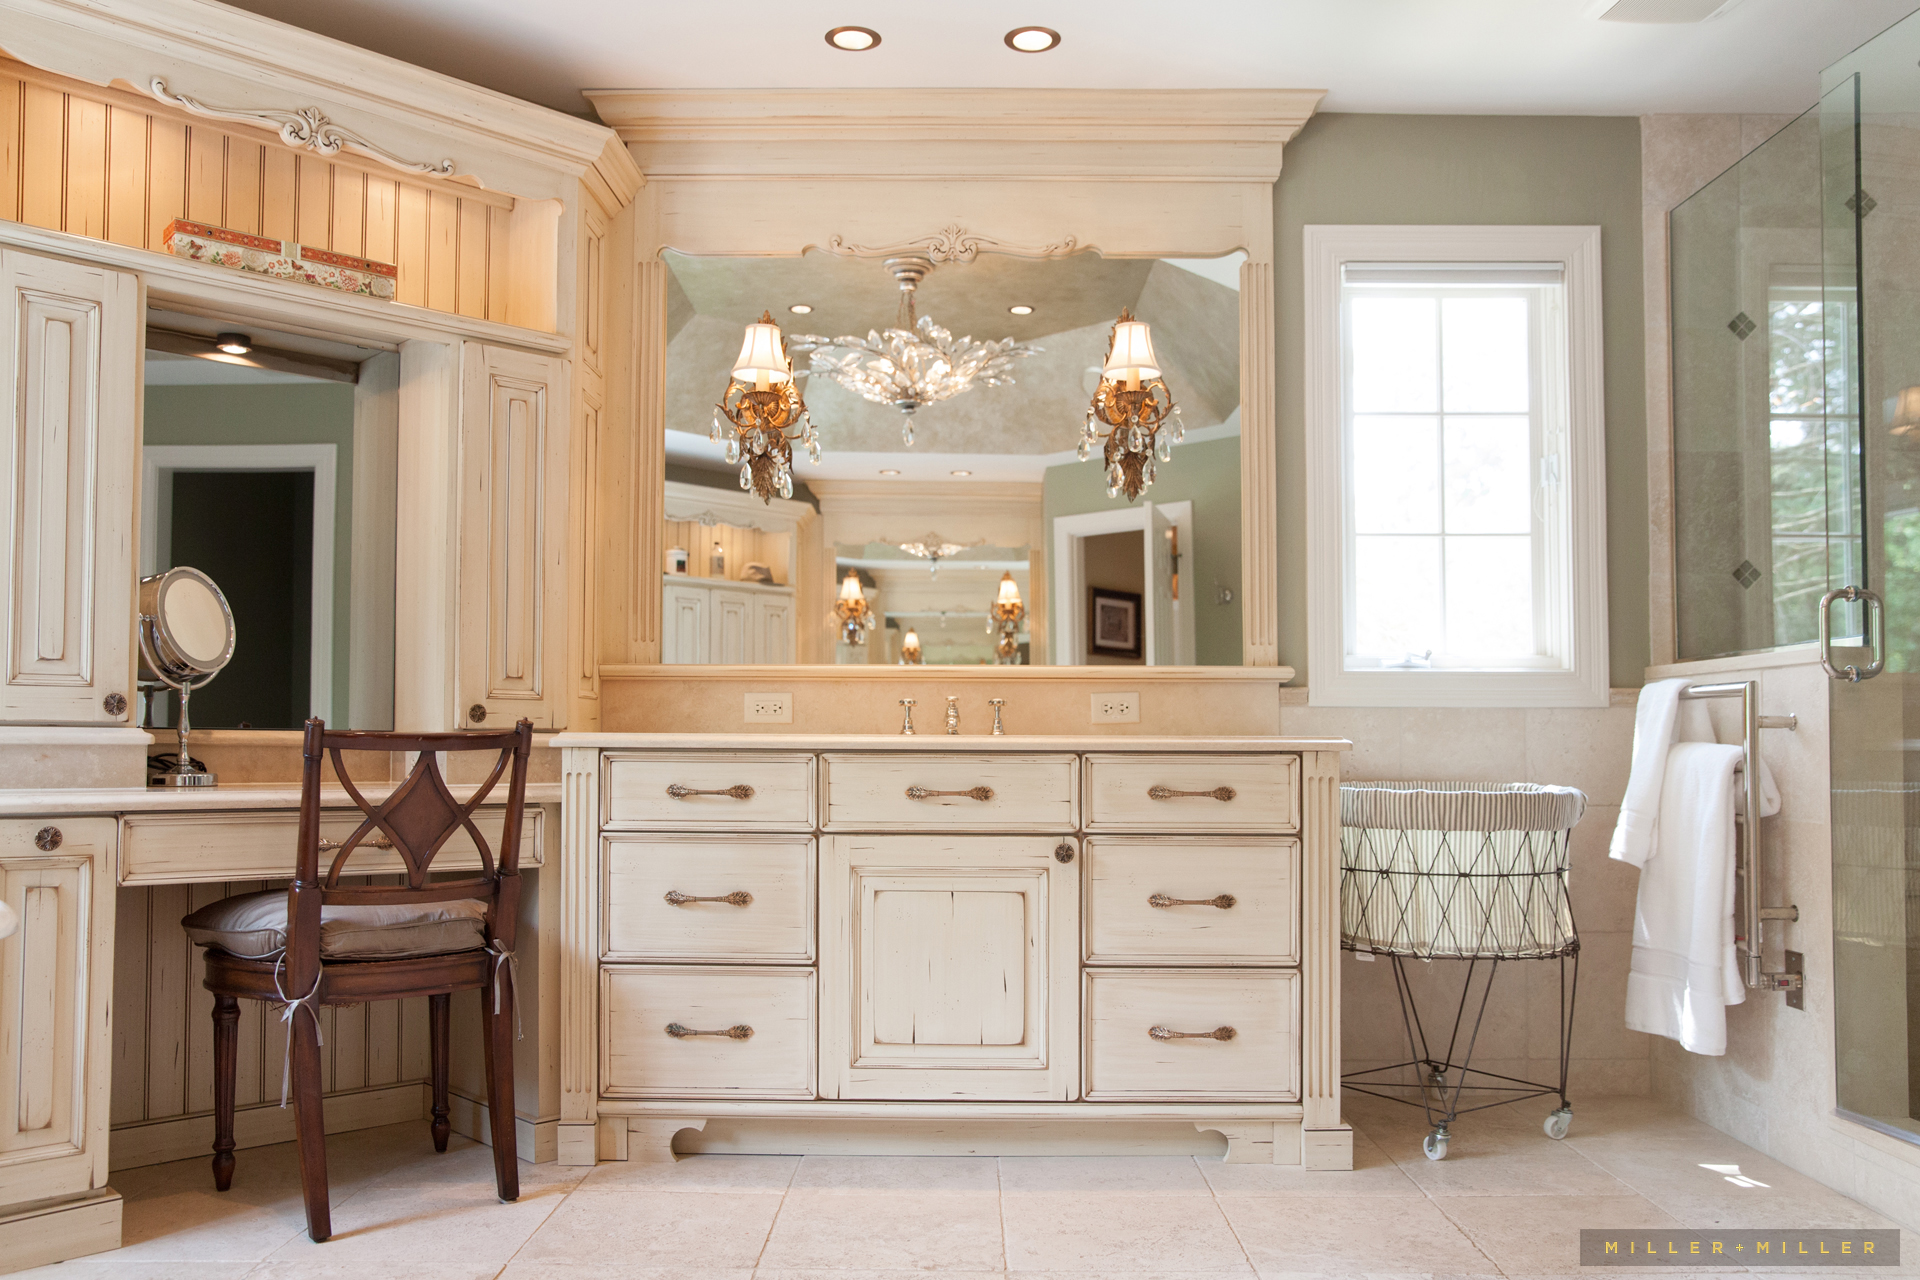 photos-handcrafted-bathroom-cabinets-cabinetry